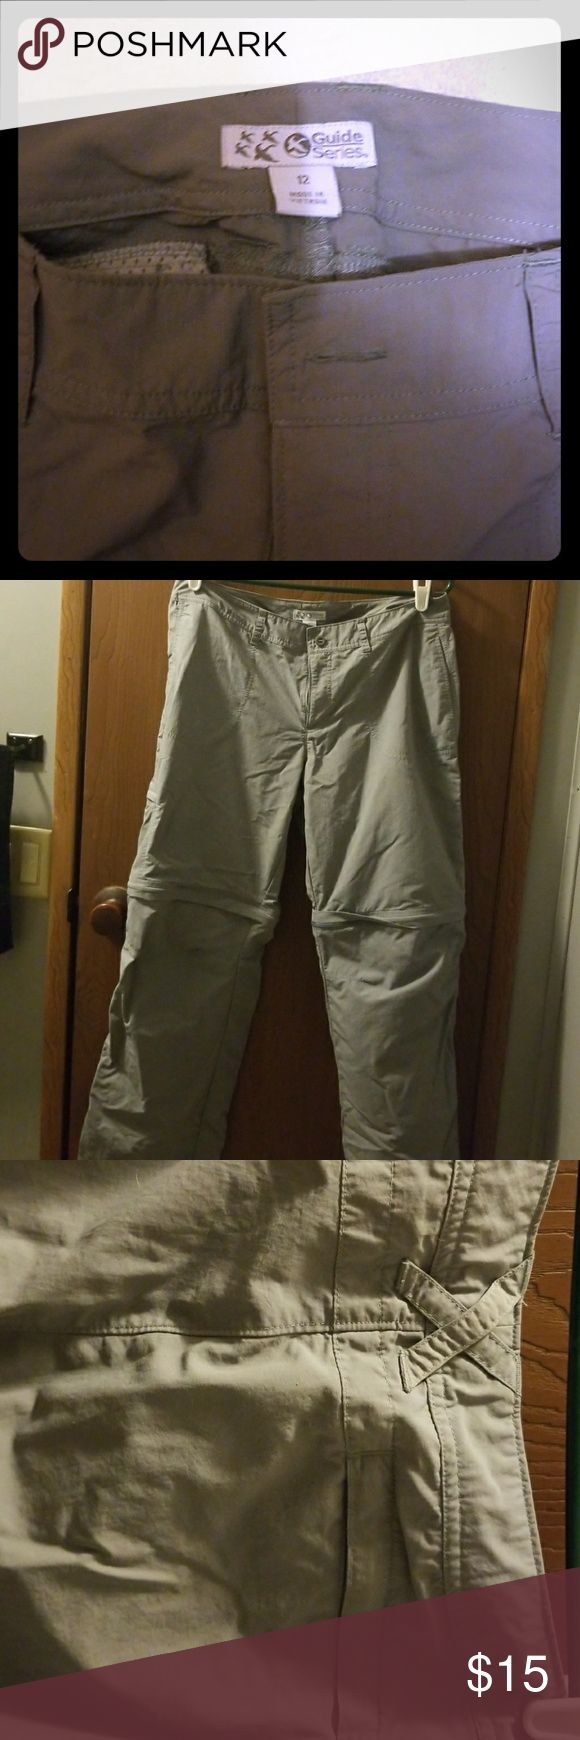 Gander mountain guide series hiking pants Zip off pants legs to convert to shorts. No fraying or rips. Soft durable fabric. One side pocket. One back pocket and two front pockets. Like new condition. gander mountain Pants Track Pants & Joggers